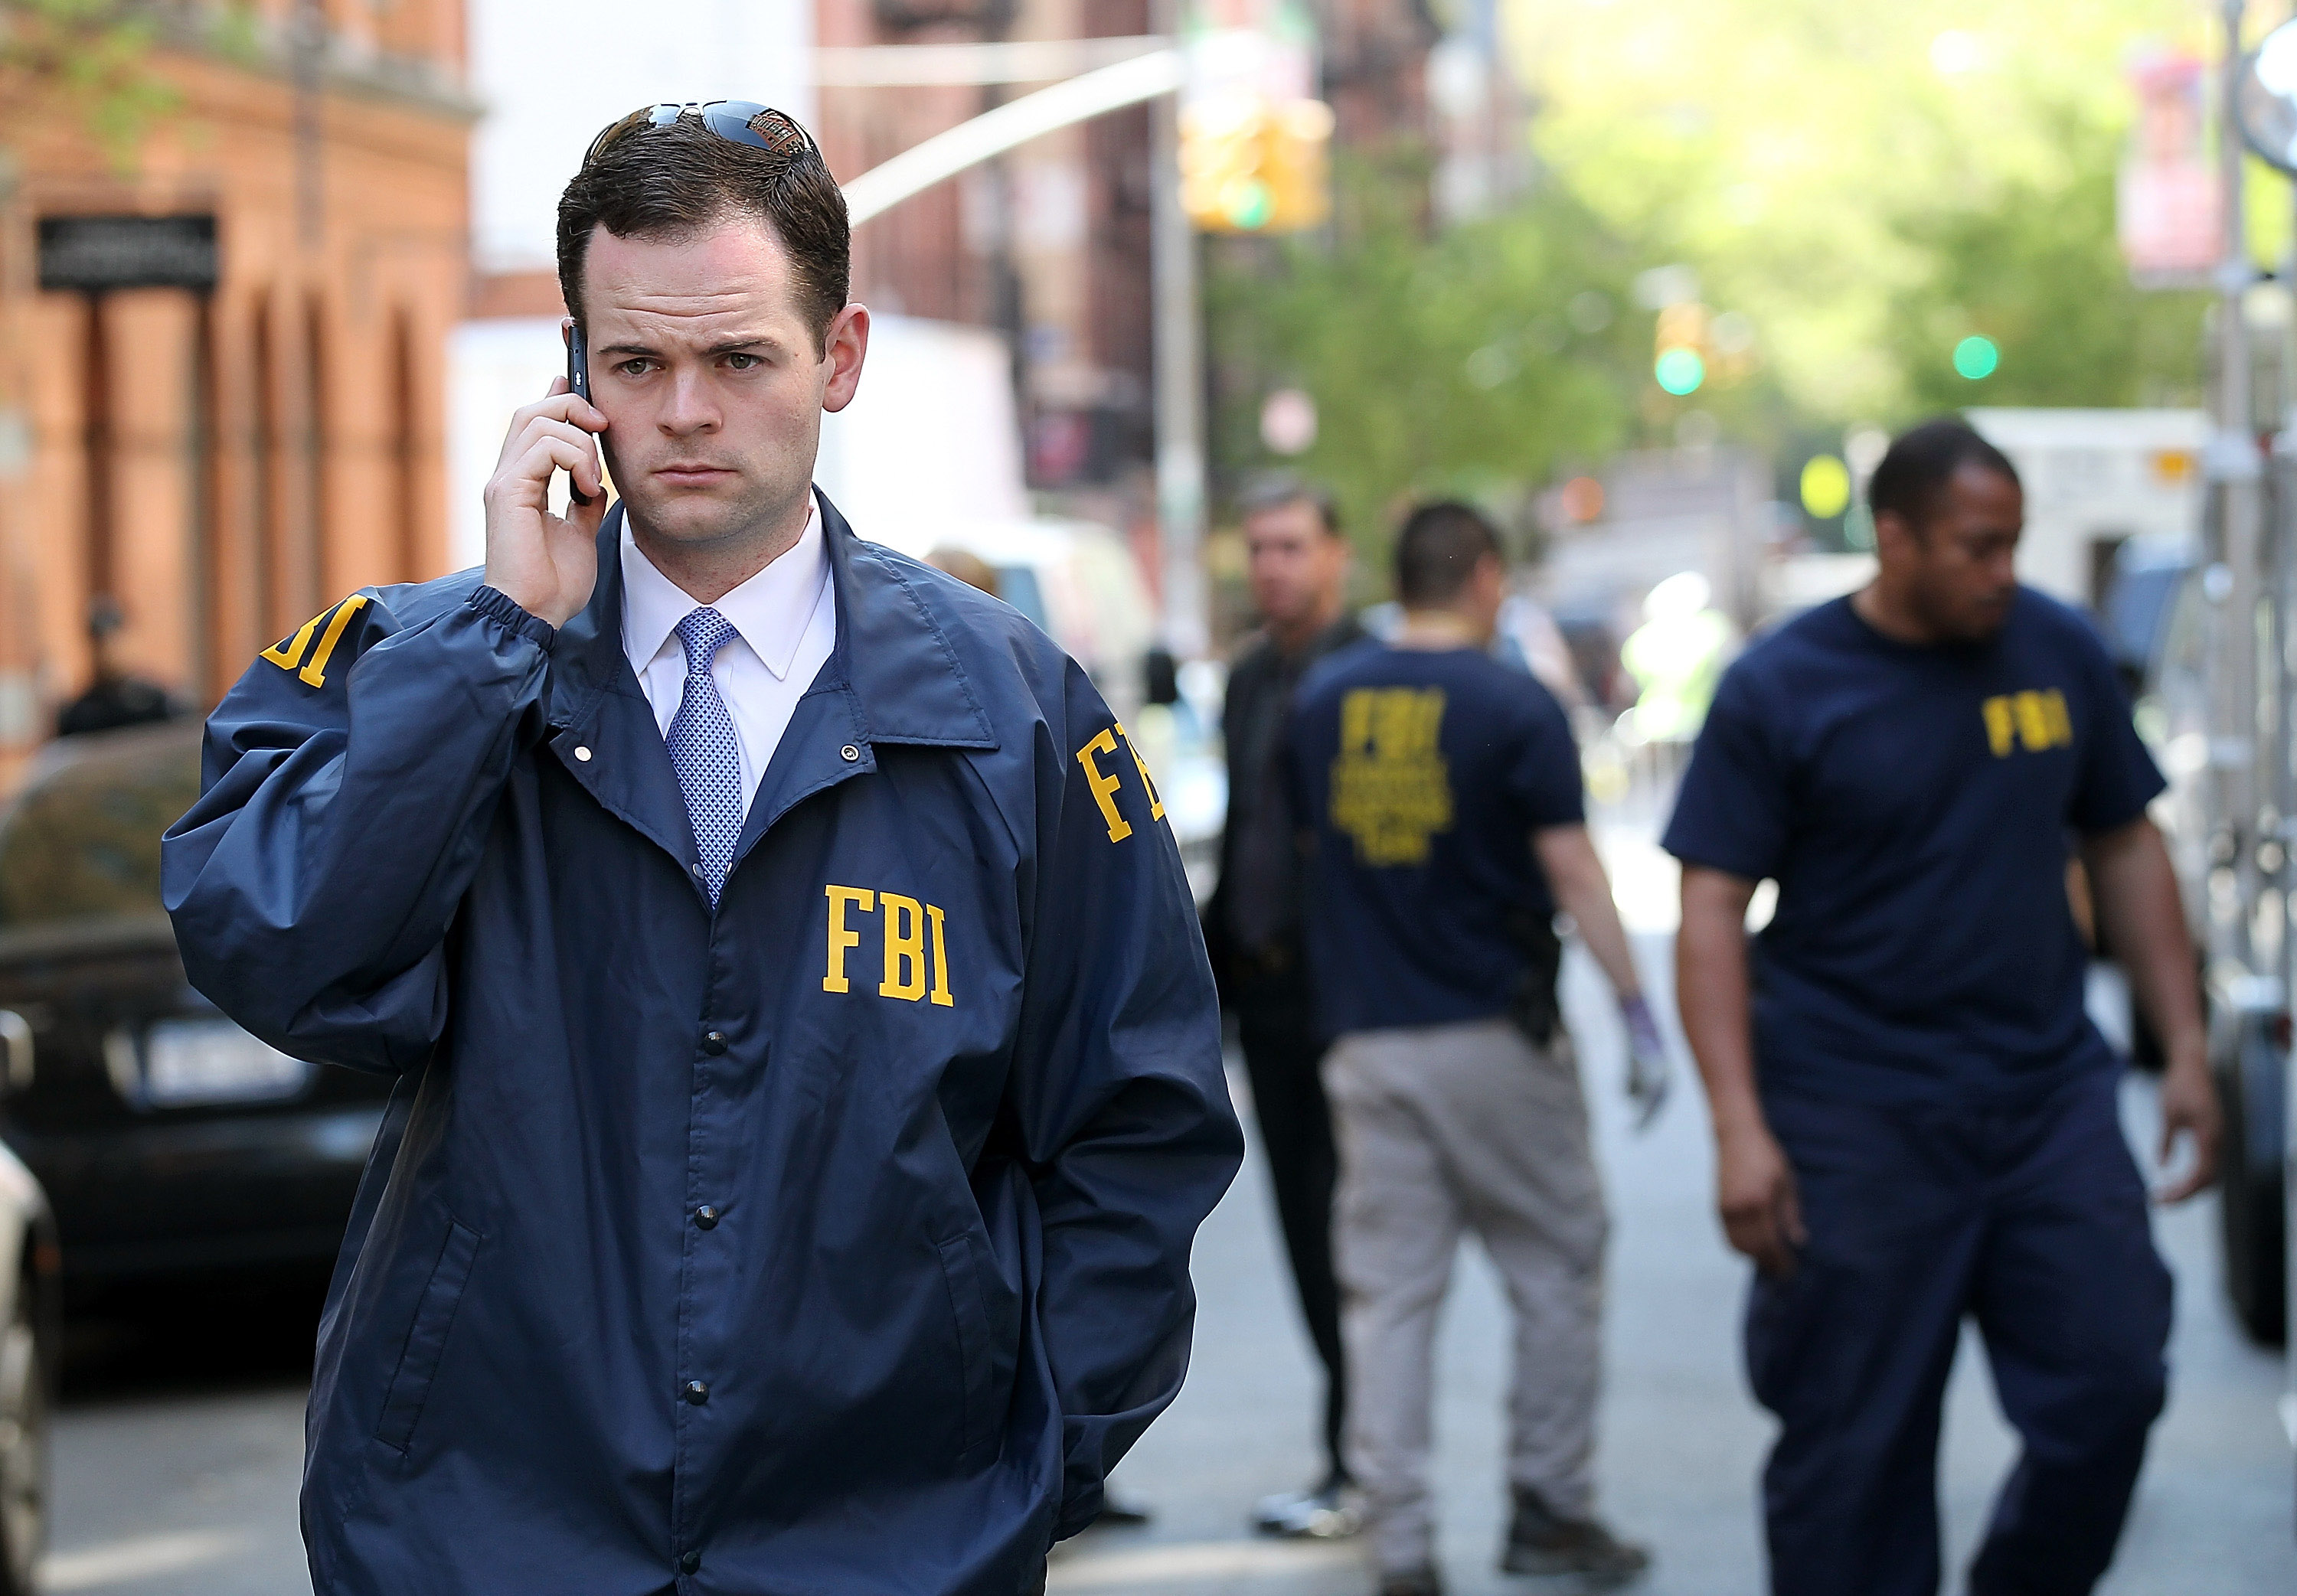 How Much Does an FBI Agent Make Per Year? | Bizfluent